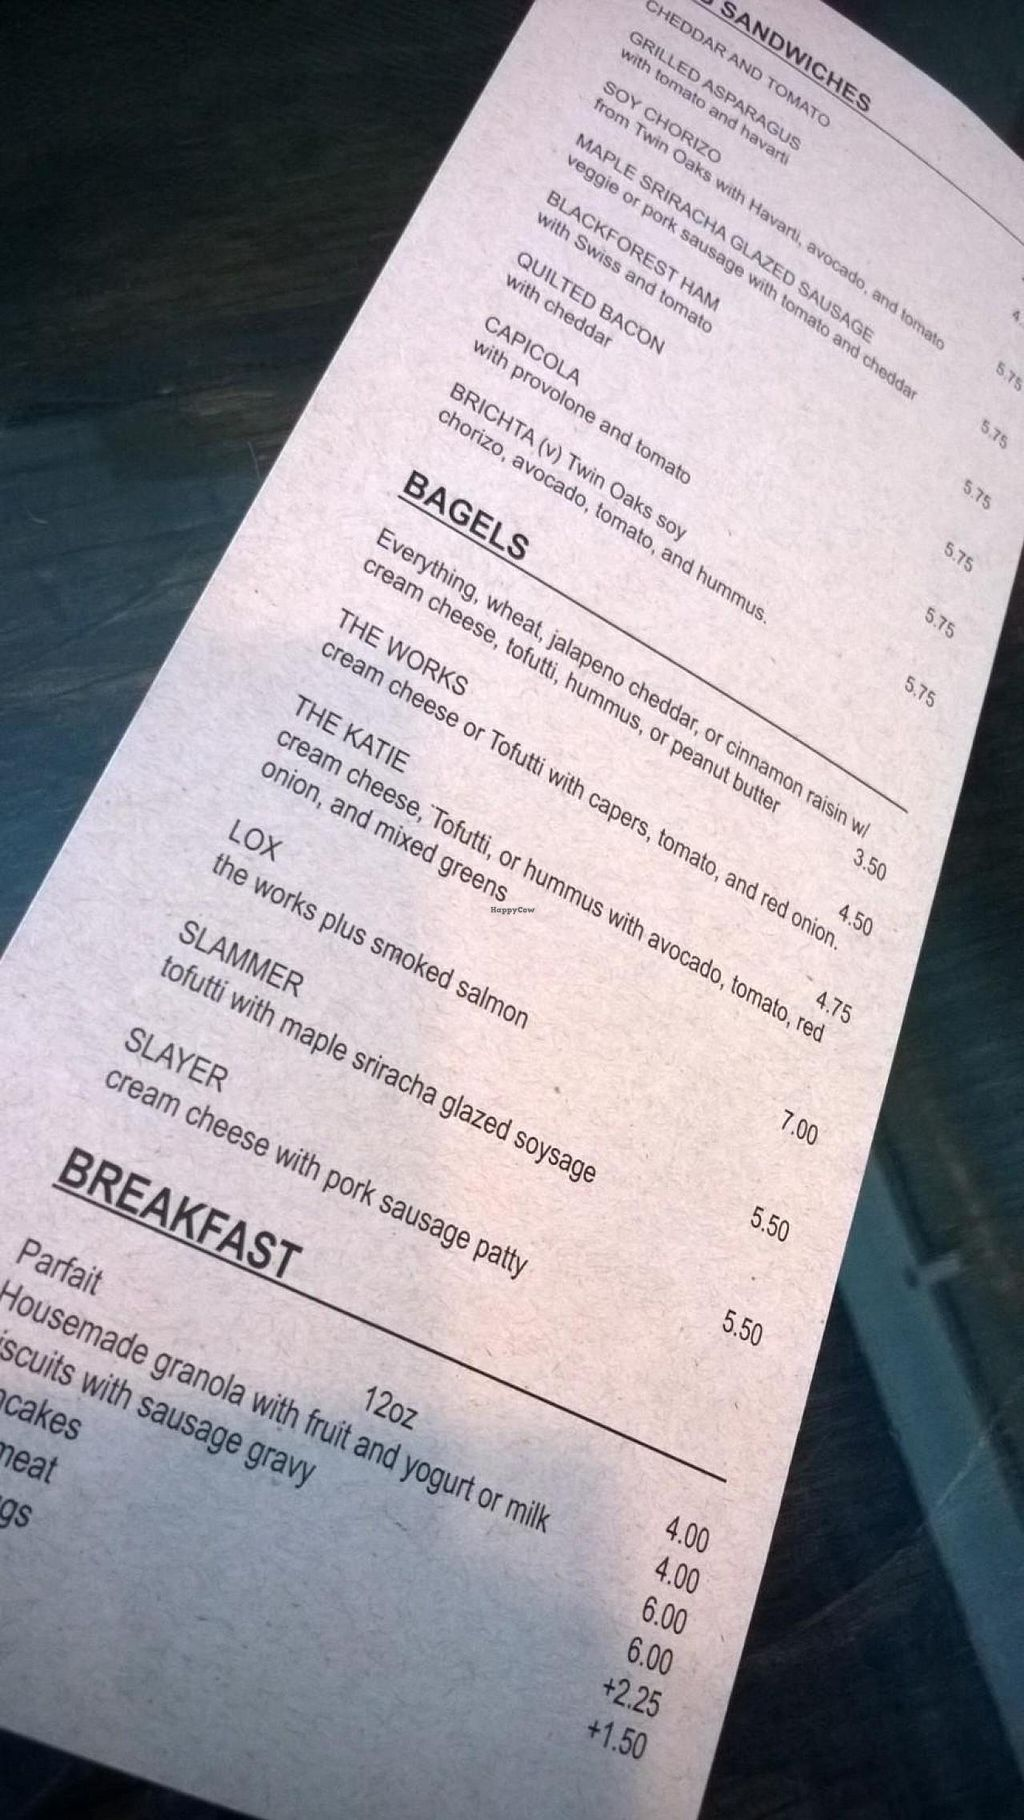 """Photo of Lamplighter - Morris St  by <a href=""""/members/profile/meredith"""">meredith</a> <br/>Breakfast Menu - Bagels, Sandwiches, etc.  <br/> April 17, 2014  - <a href='/contact/abuse/image/46591/67778'>Report</a>"""